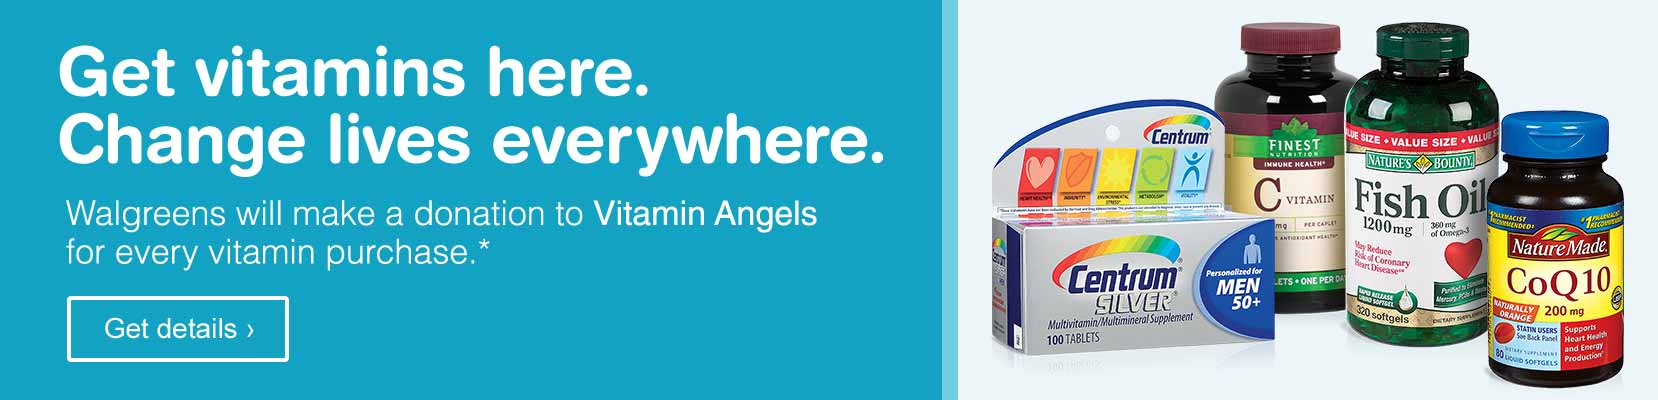 Walgreens will make a donation to Vitamin Angels for every vitamin purchase.* Get details.